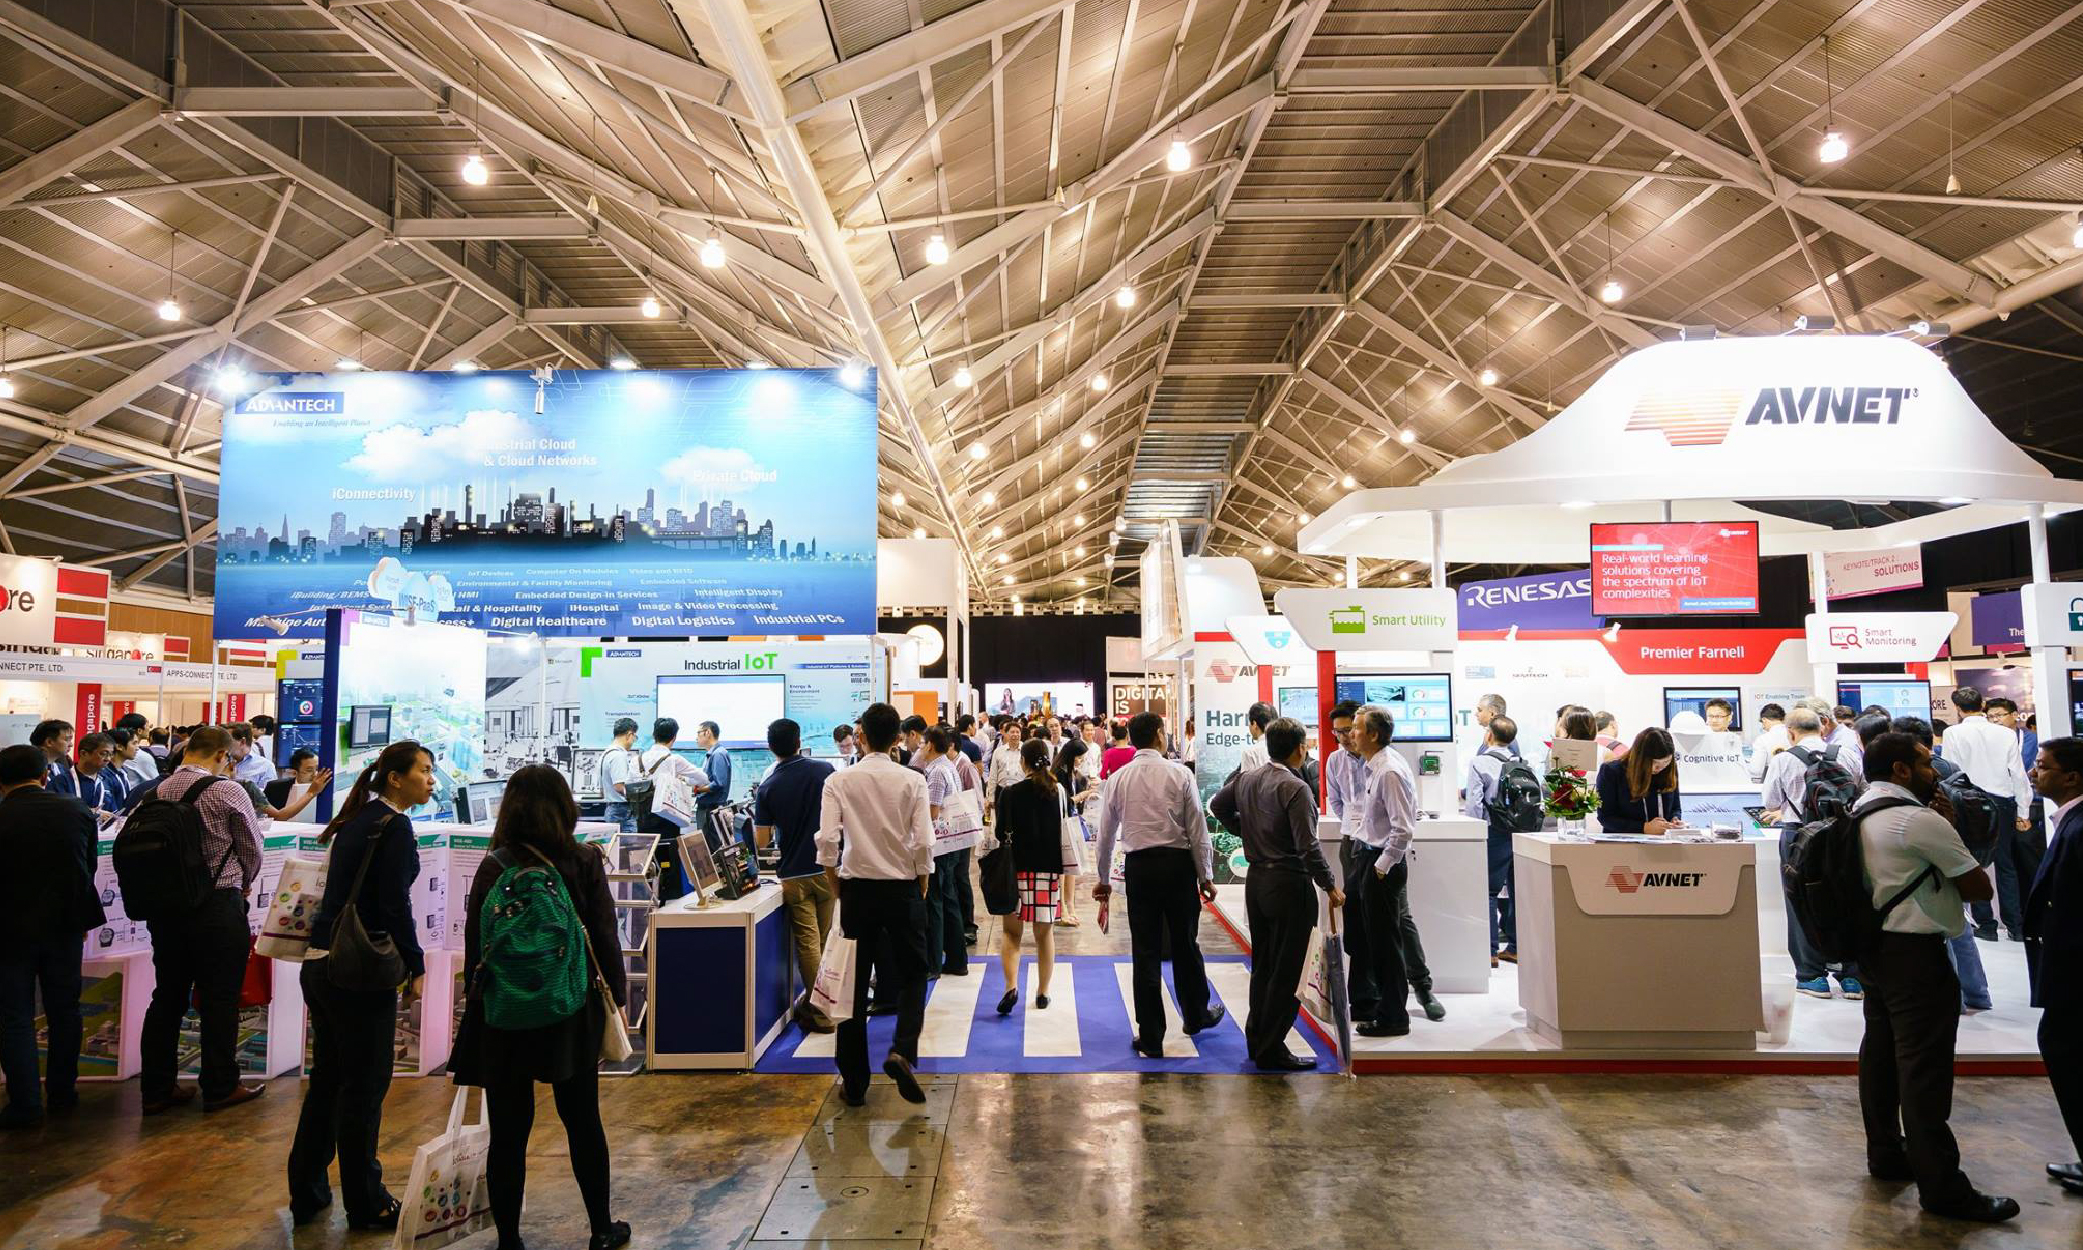 inteliLIGHT® streetlight control uses Sigfox communication during IoT Expo Asia in Singapore, March 2018